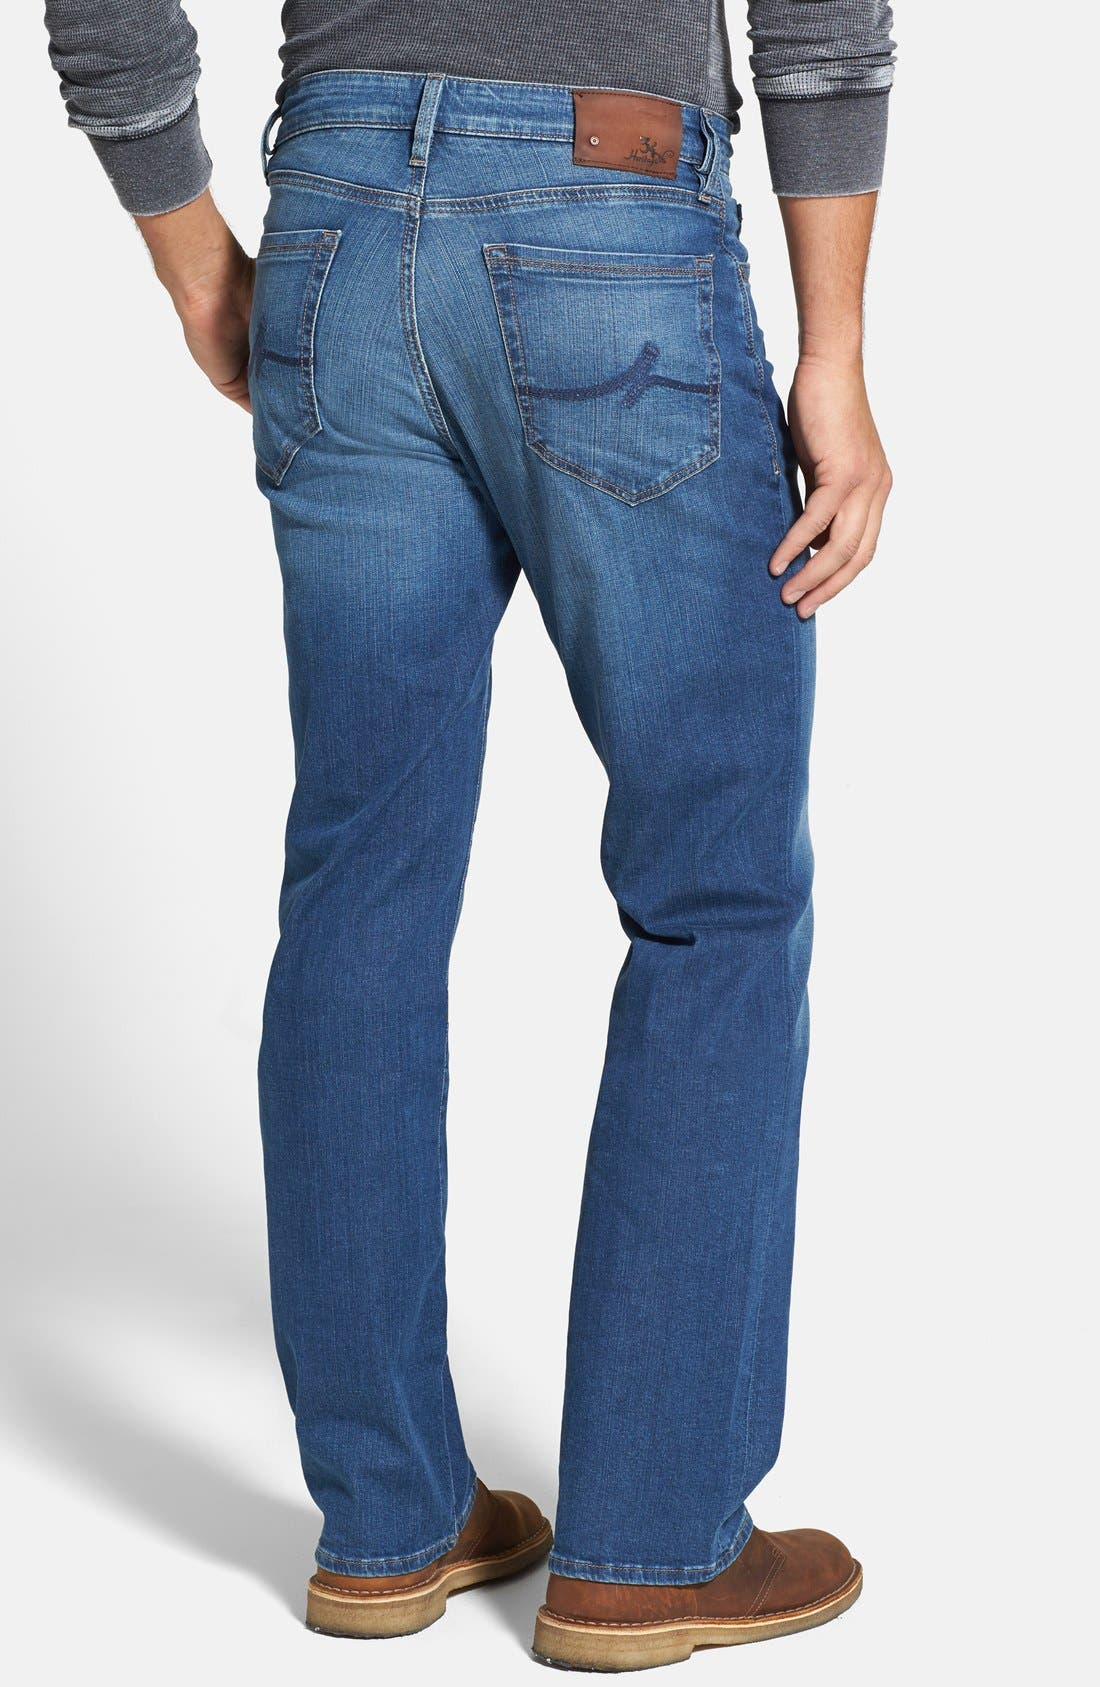 'Charisma' Classic Relaxed Fit Jeans,                             Alternate thumbnail 7, color,                             MID CASHMERE